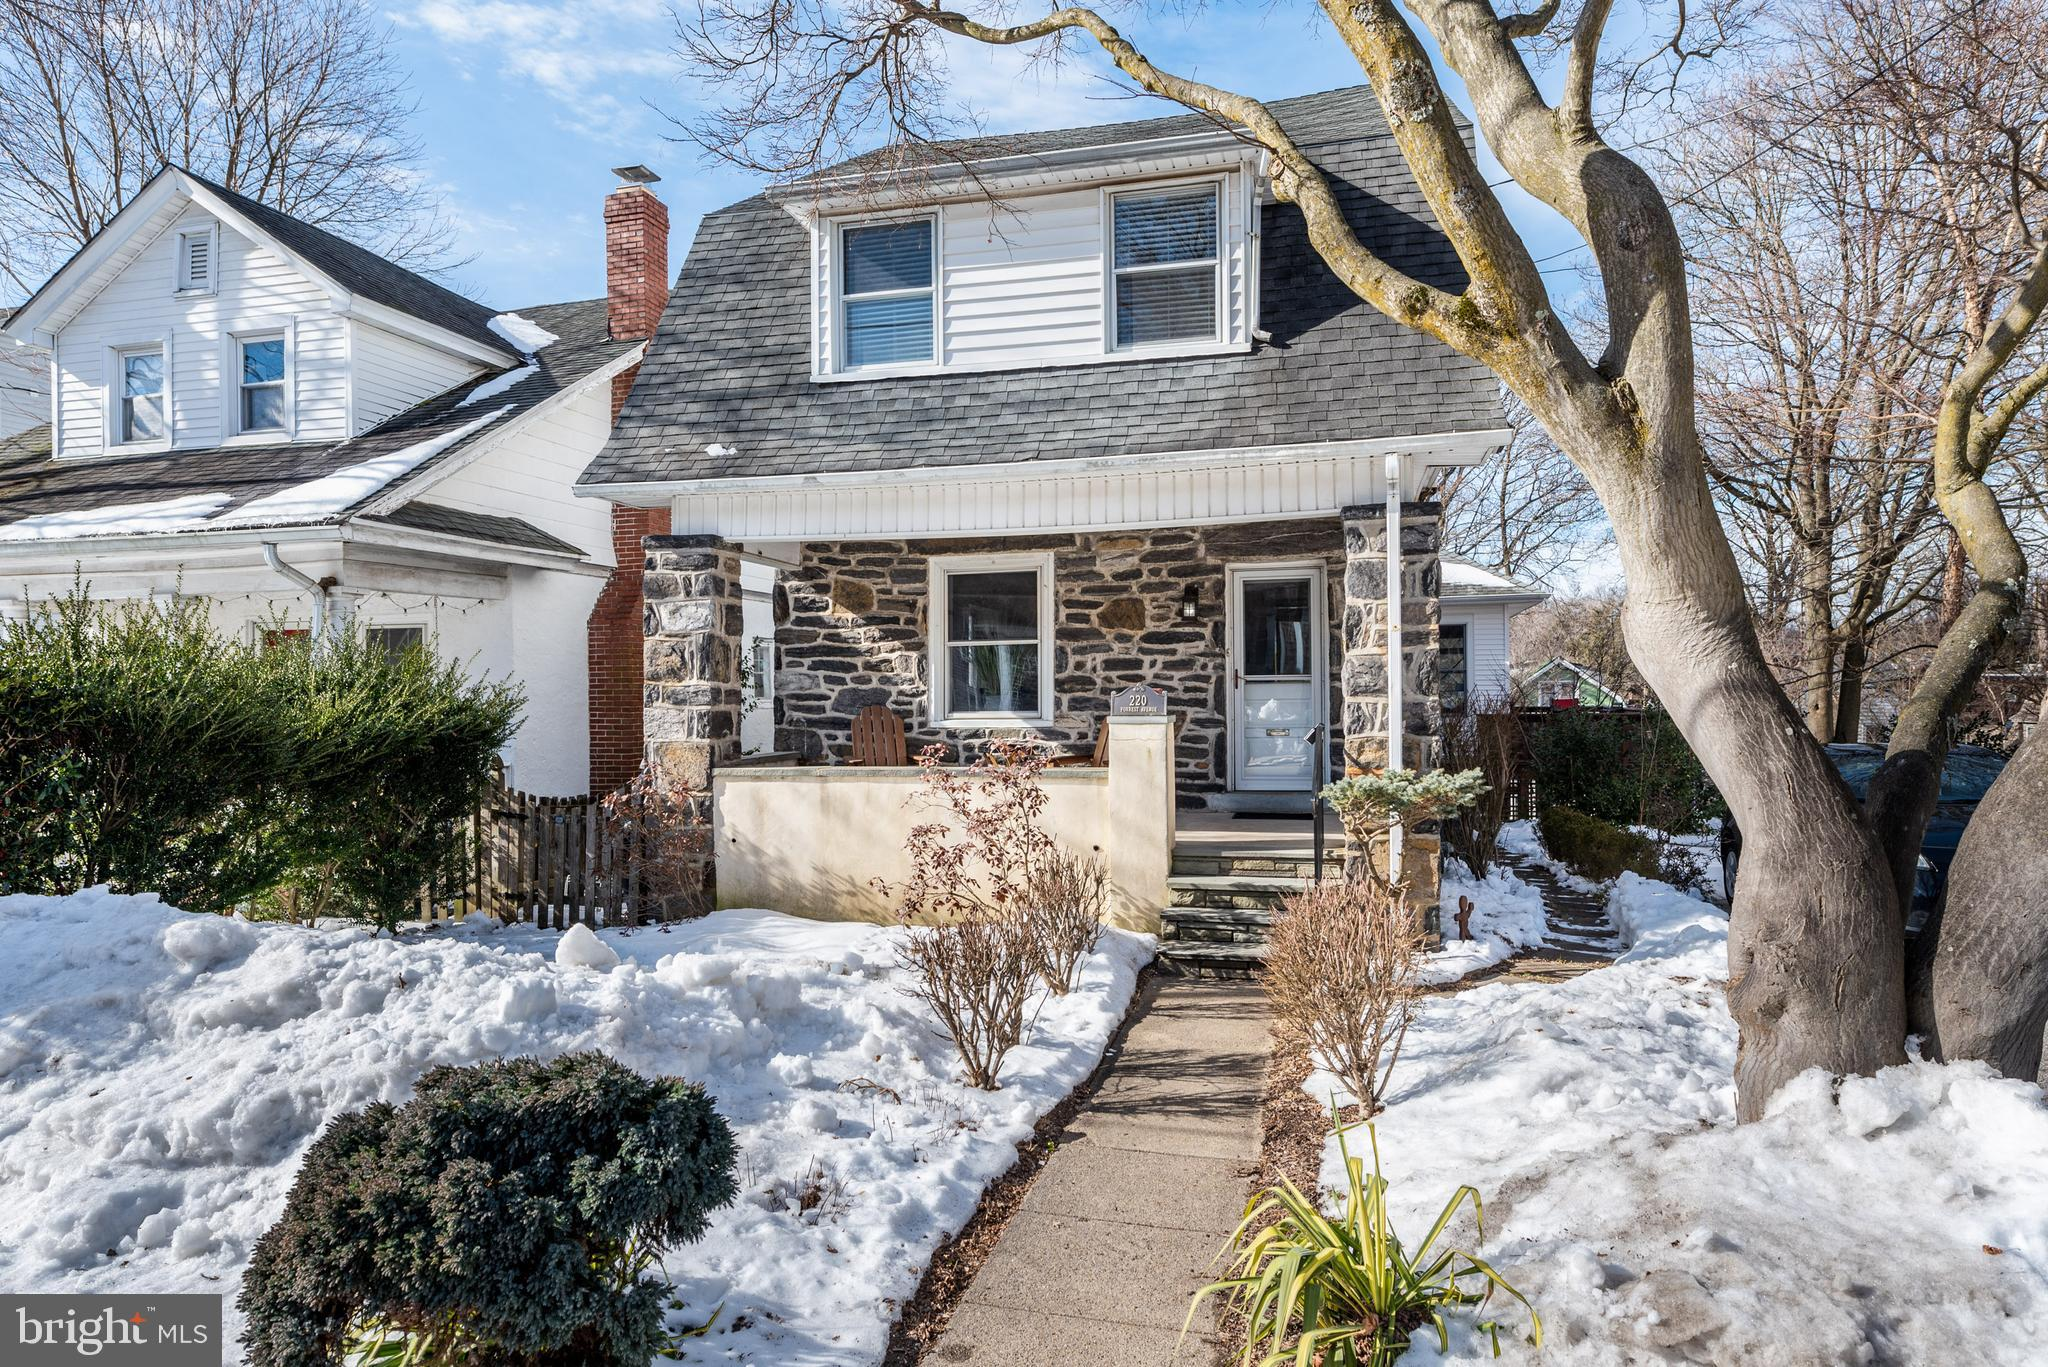 Welcome to this special Narberth home on one of the best blocks in the Borough. Narberths appeal is hard to overstate, with its walkability and movie theater, library, and public park, as well as easy access to Center City (the train station is just two blocks away). Walk to the Boroughs numerous independent businesses, including a grocer/deli shop, cheese shop, French pastry shop, and terrific pubs and restaurants. The warm, traditional street presence belies the great amount of space inside - with plenty of square footage to support work and education from home for all family members. And its location in Lower Merion - ranked #2 in the nation for living and working from home by Money magazine - is a true plus. Under the current boundaries in the highly rated Lower Merion School District, children attend Belmont Hills Elementary, Welsh Valley Middle School and have a choice of Lower Merion High School or Harriton High School. The covered porch opens into a large interior, and the expansive great room addition is secluded from the street. The combination living/dining room is spacious and sunny, with well-placed windows and gleaming wood floors with inlaid accent. The cheerful kitchen has white wood cabinets, stainless steel appliances, and custom tiled floor. There is an open half-wall to a true gem of this home: its open, step-down great room. The great room was added in 2006. It is over 500 square feet (23ft x 23ft) and is a wonderful gathering space with a soaring cathedral ceiling, beautiful gas fireplace, and dining area. The ten oversized Andersen windows truly let the sunshine stream in, and the ceiling fan and recessed lighting enhance the comfort and beauty of this multipurpose room. Walk out through Andersen French doors to the gorgeous 400 square foot (29 ft x 9 ft) deck (with new polywood boards) overlooking the bucolic yard. The great room and deck flow beautifully from the kitchen for entertaining. In addition, the long views to the west allow you to 